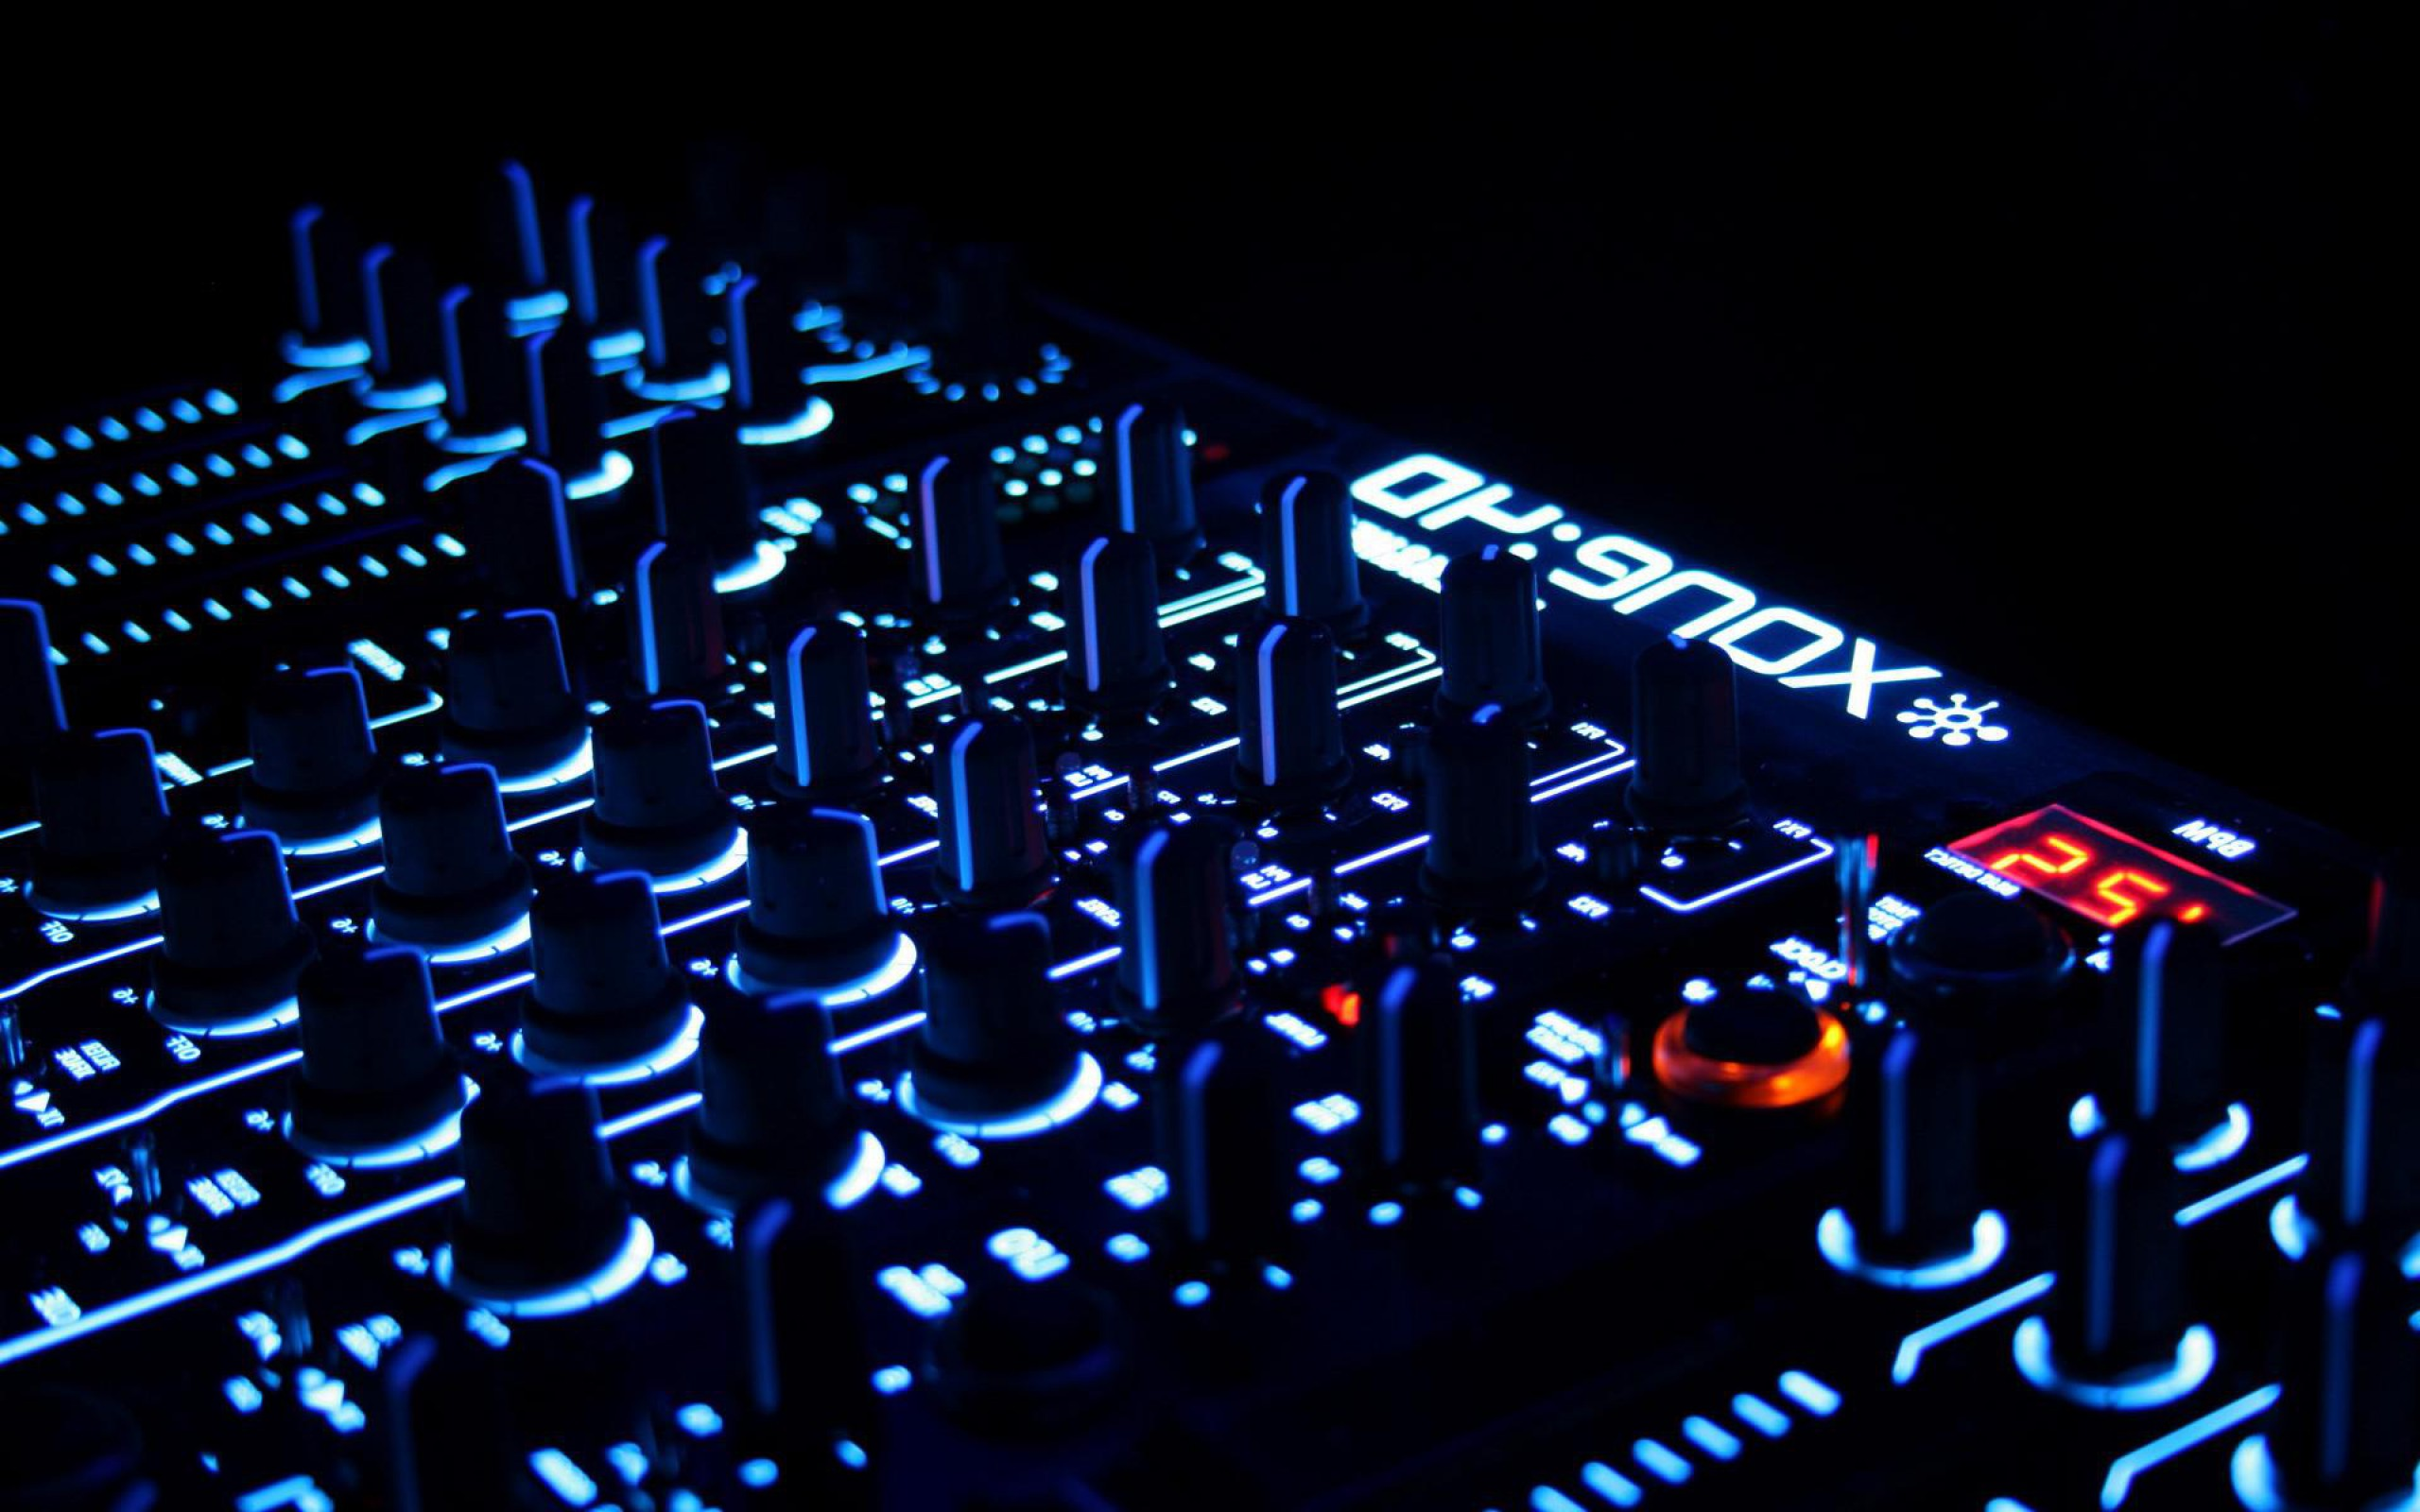 House Music Dj Wallpaper